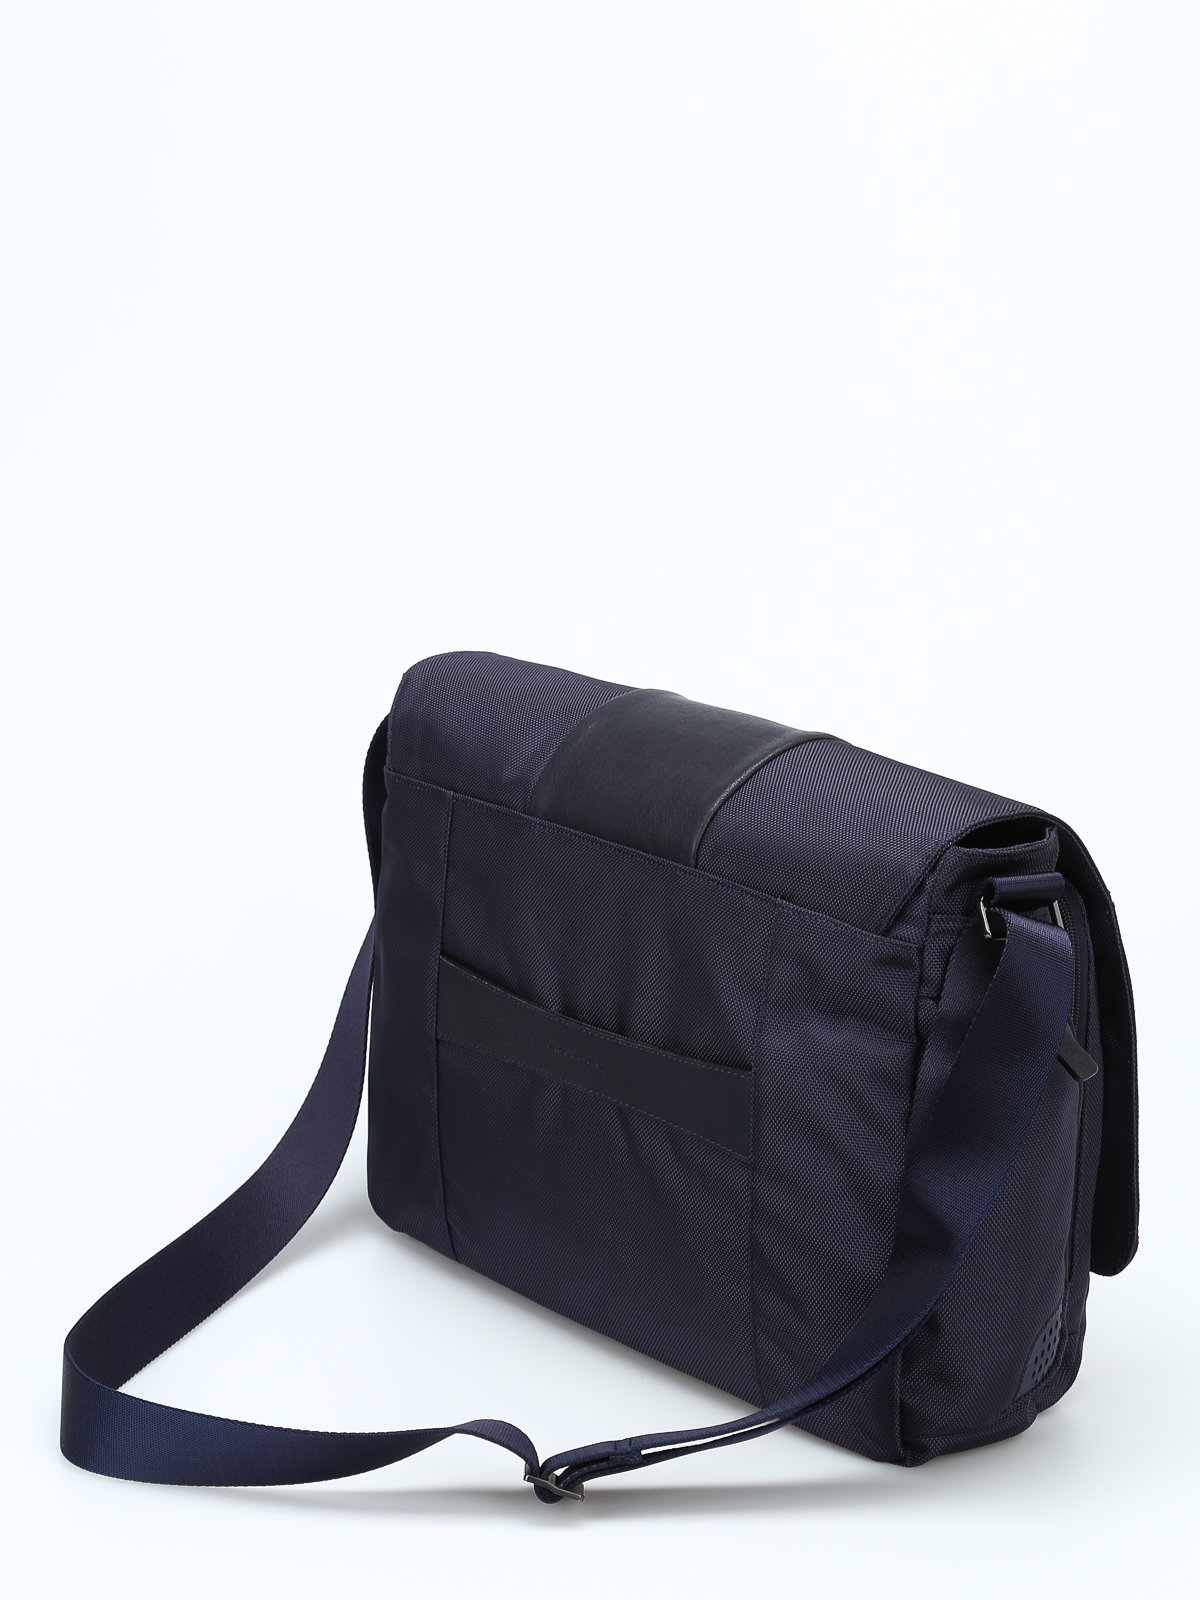 b667dc98e8c iKRIX PIQUADRO  shoulder bags - Leather and techno fabric messenger